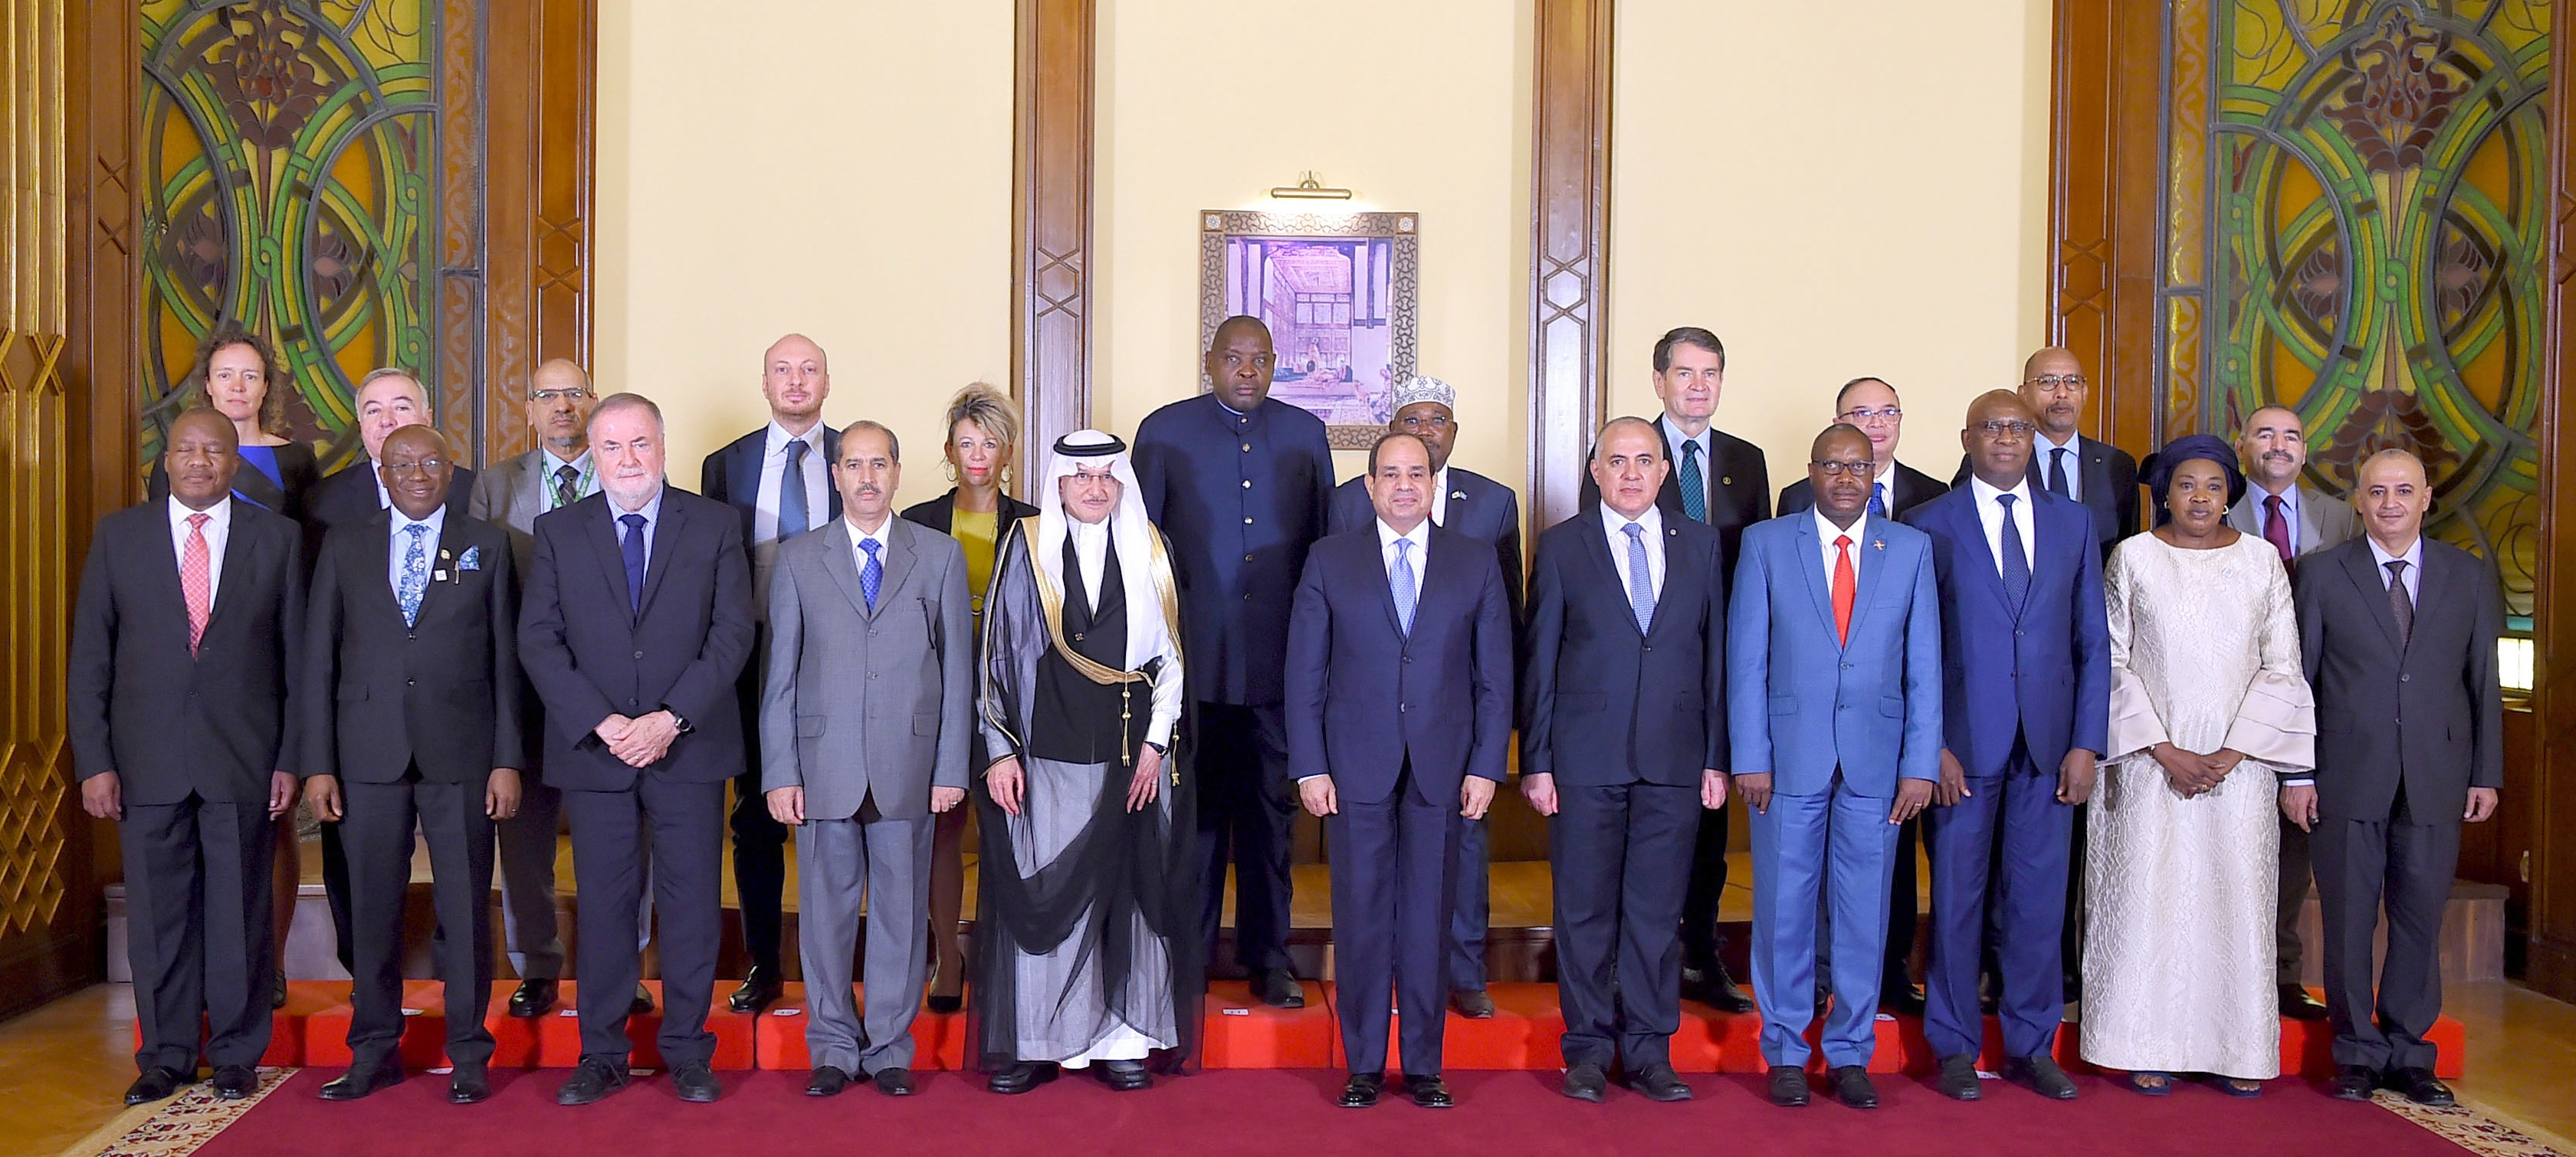 Loïc Fauchon during Cairo Water Week, welcomed by President Abdel Fattah el-Sisi of Egypt, at the President's Palace, together with other high dignitaries, Cairo, Monday 21 October 2019